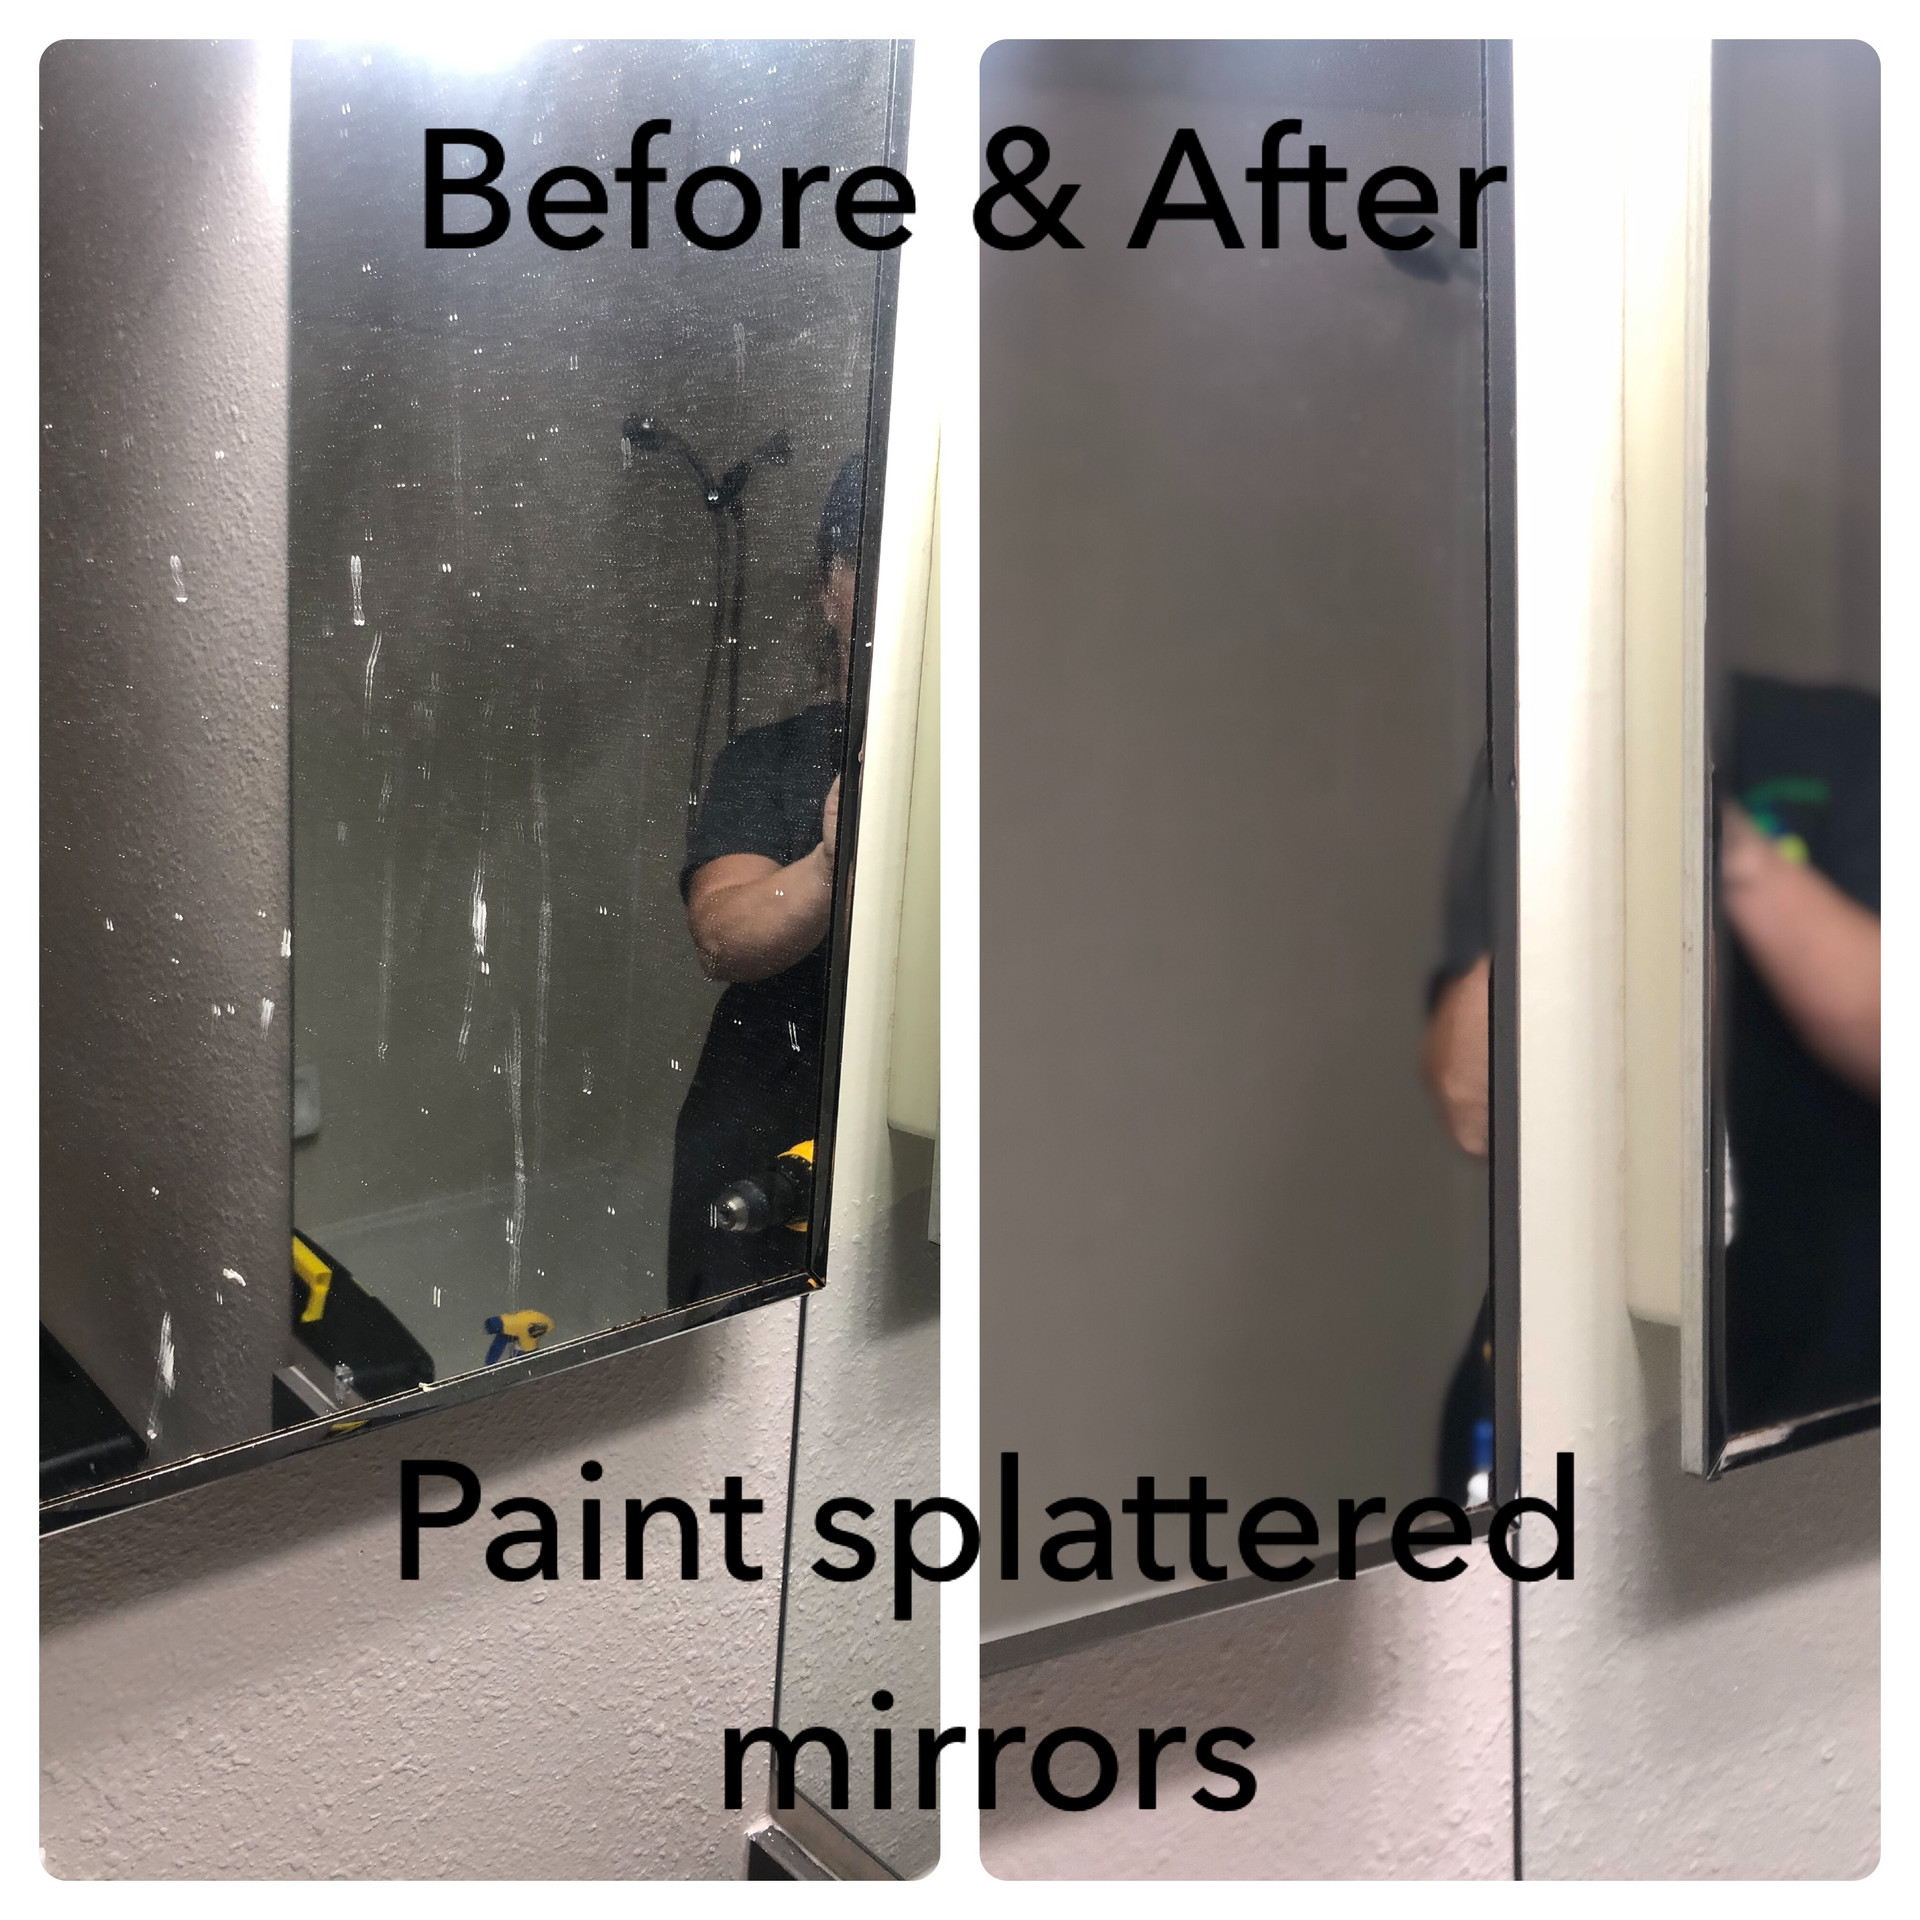 Dirty Paint splattered Mirror Before and After